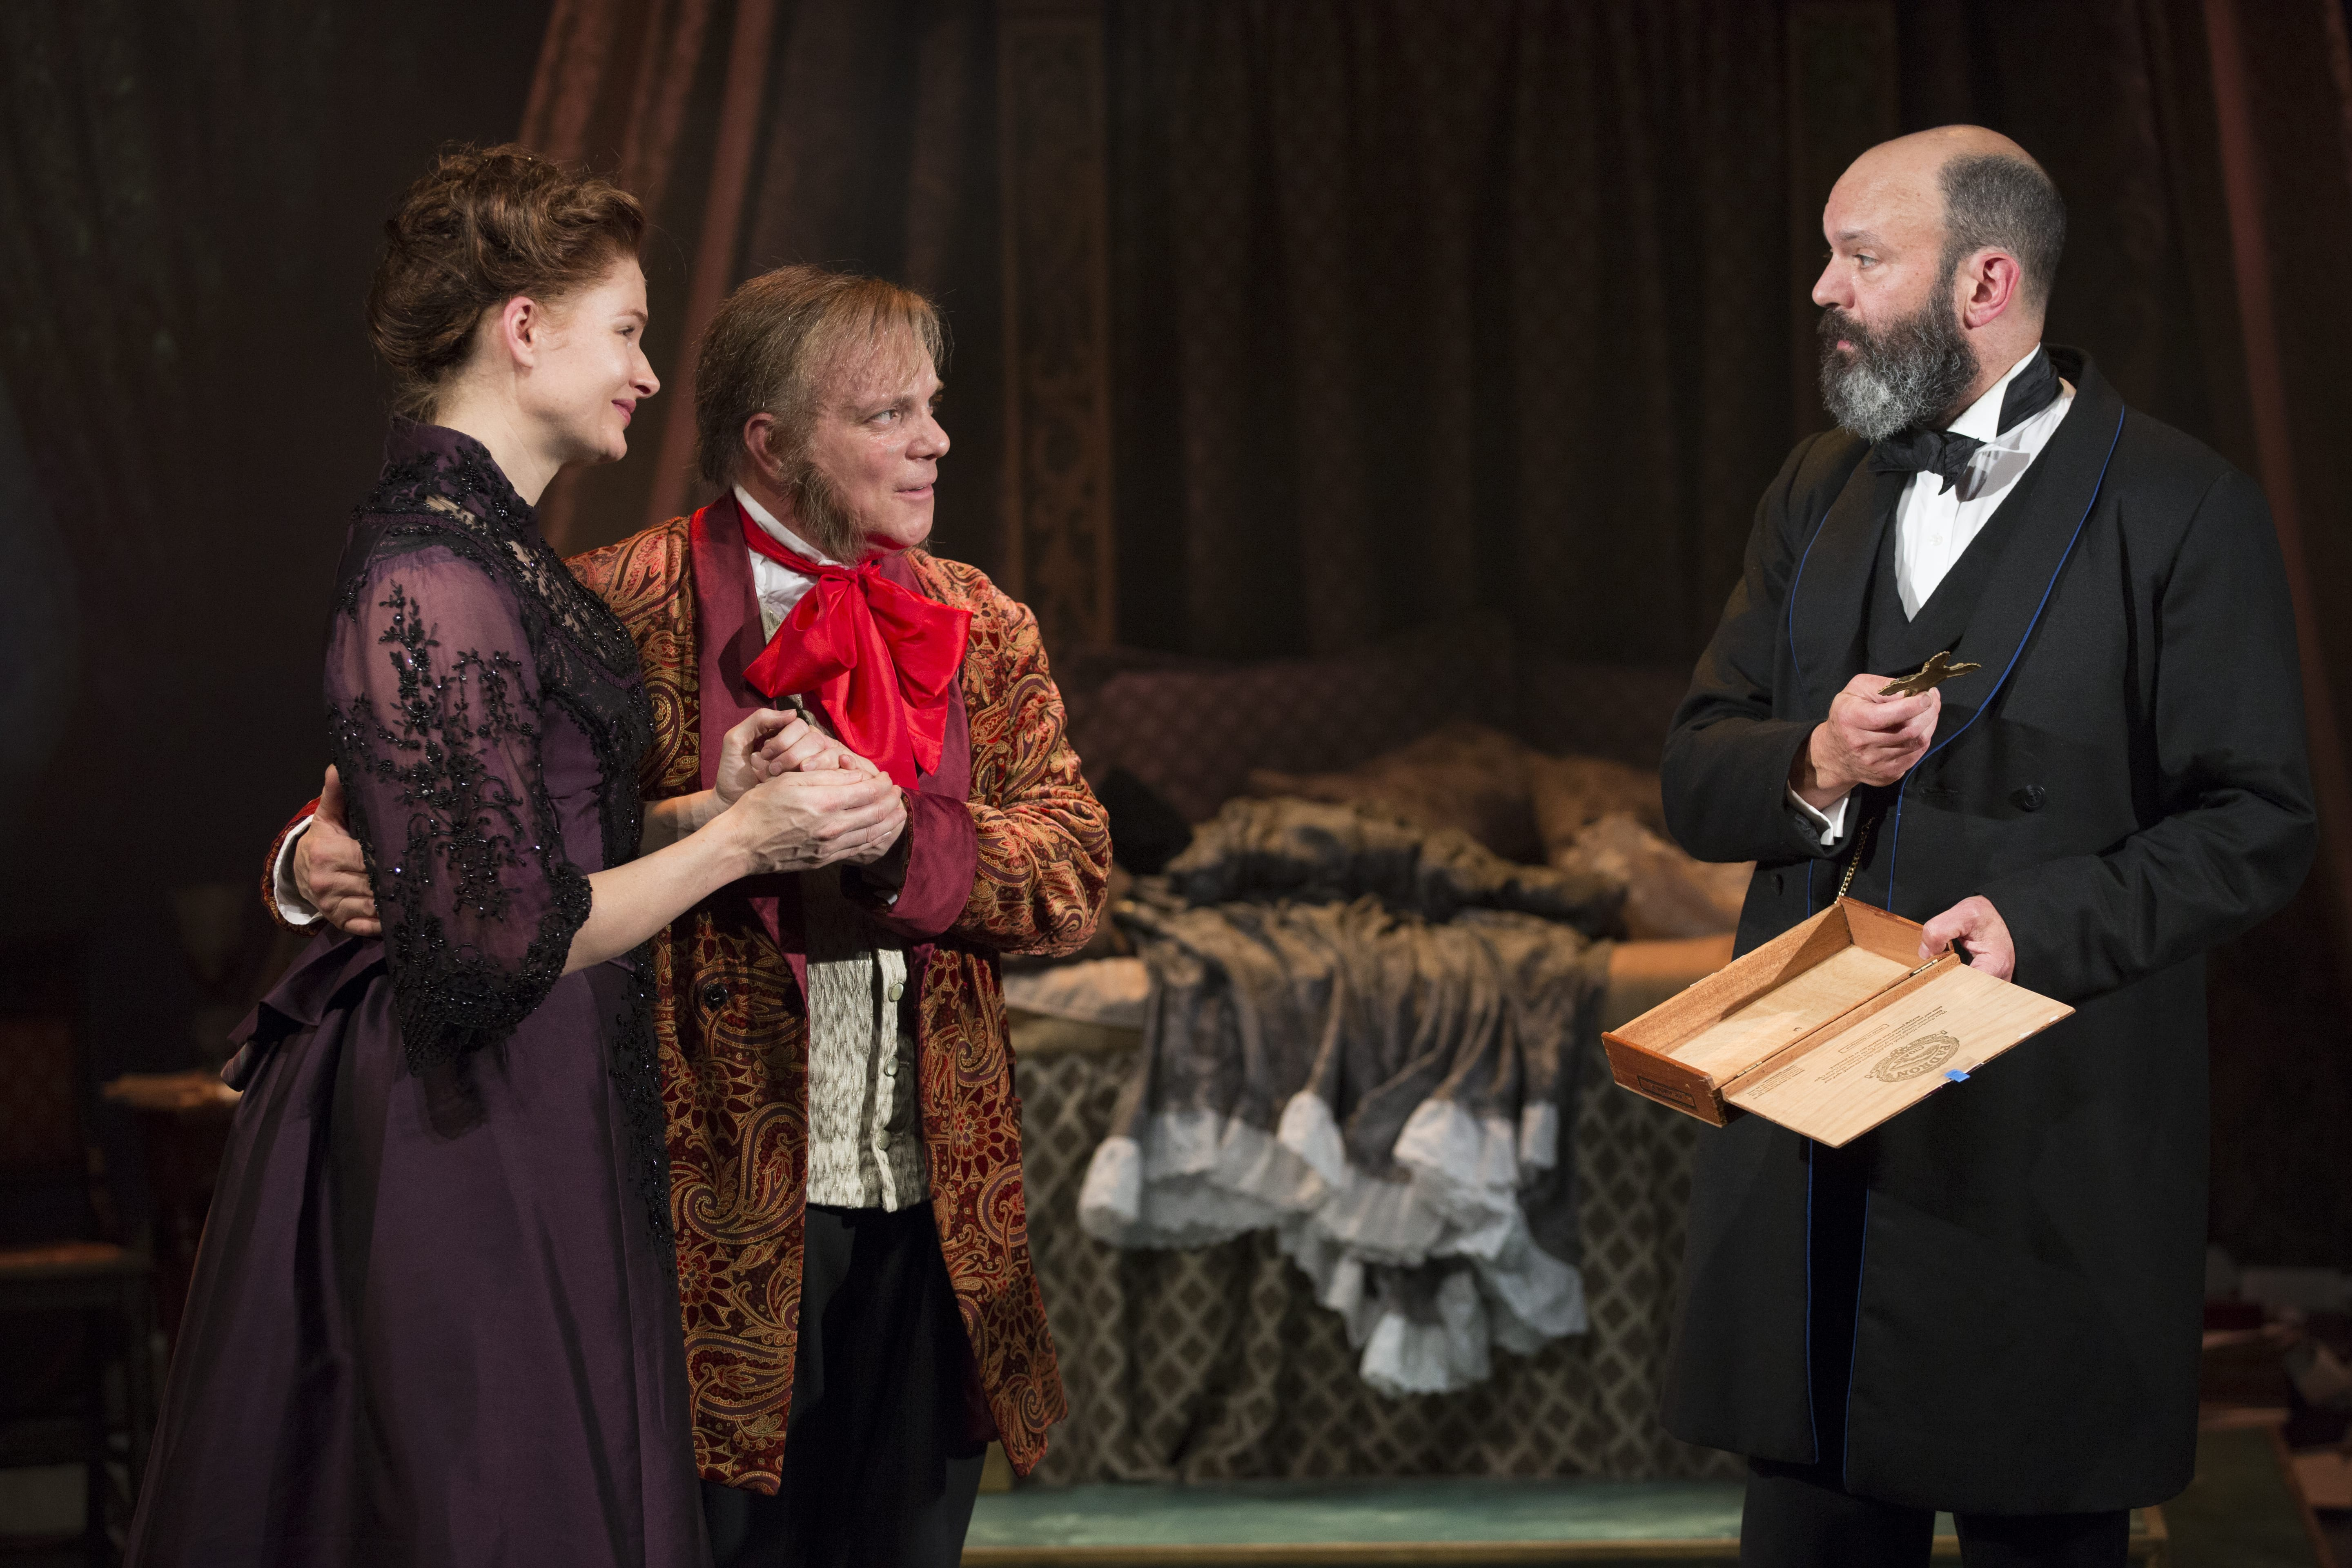 Claire Brownell as Cosima; Eddie Korbich as Wagner; Geoffrey Cantor as Hermann Levi © Carol Rosegg